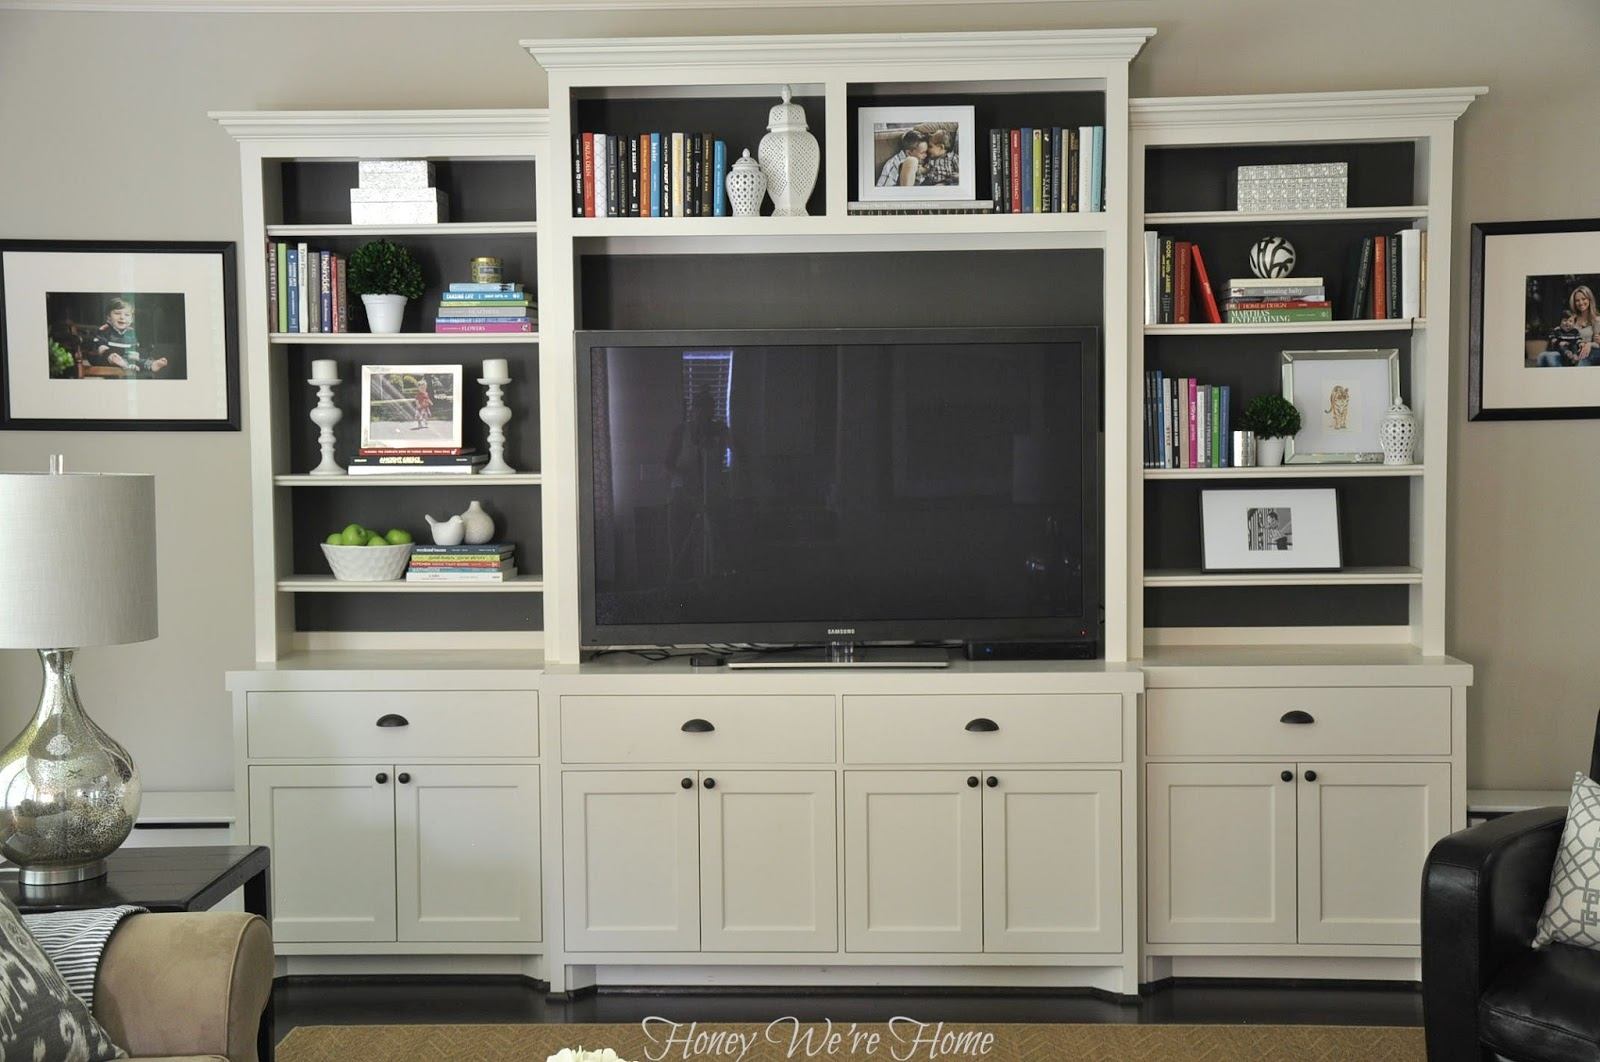 cabinets door sonoma sliding furniture cabinet thumb media products living